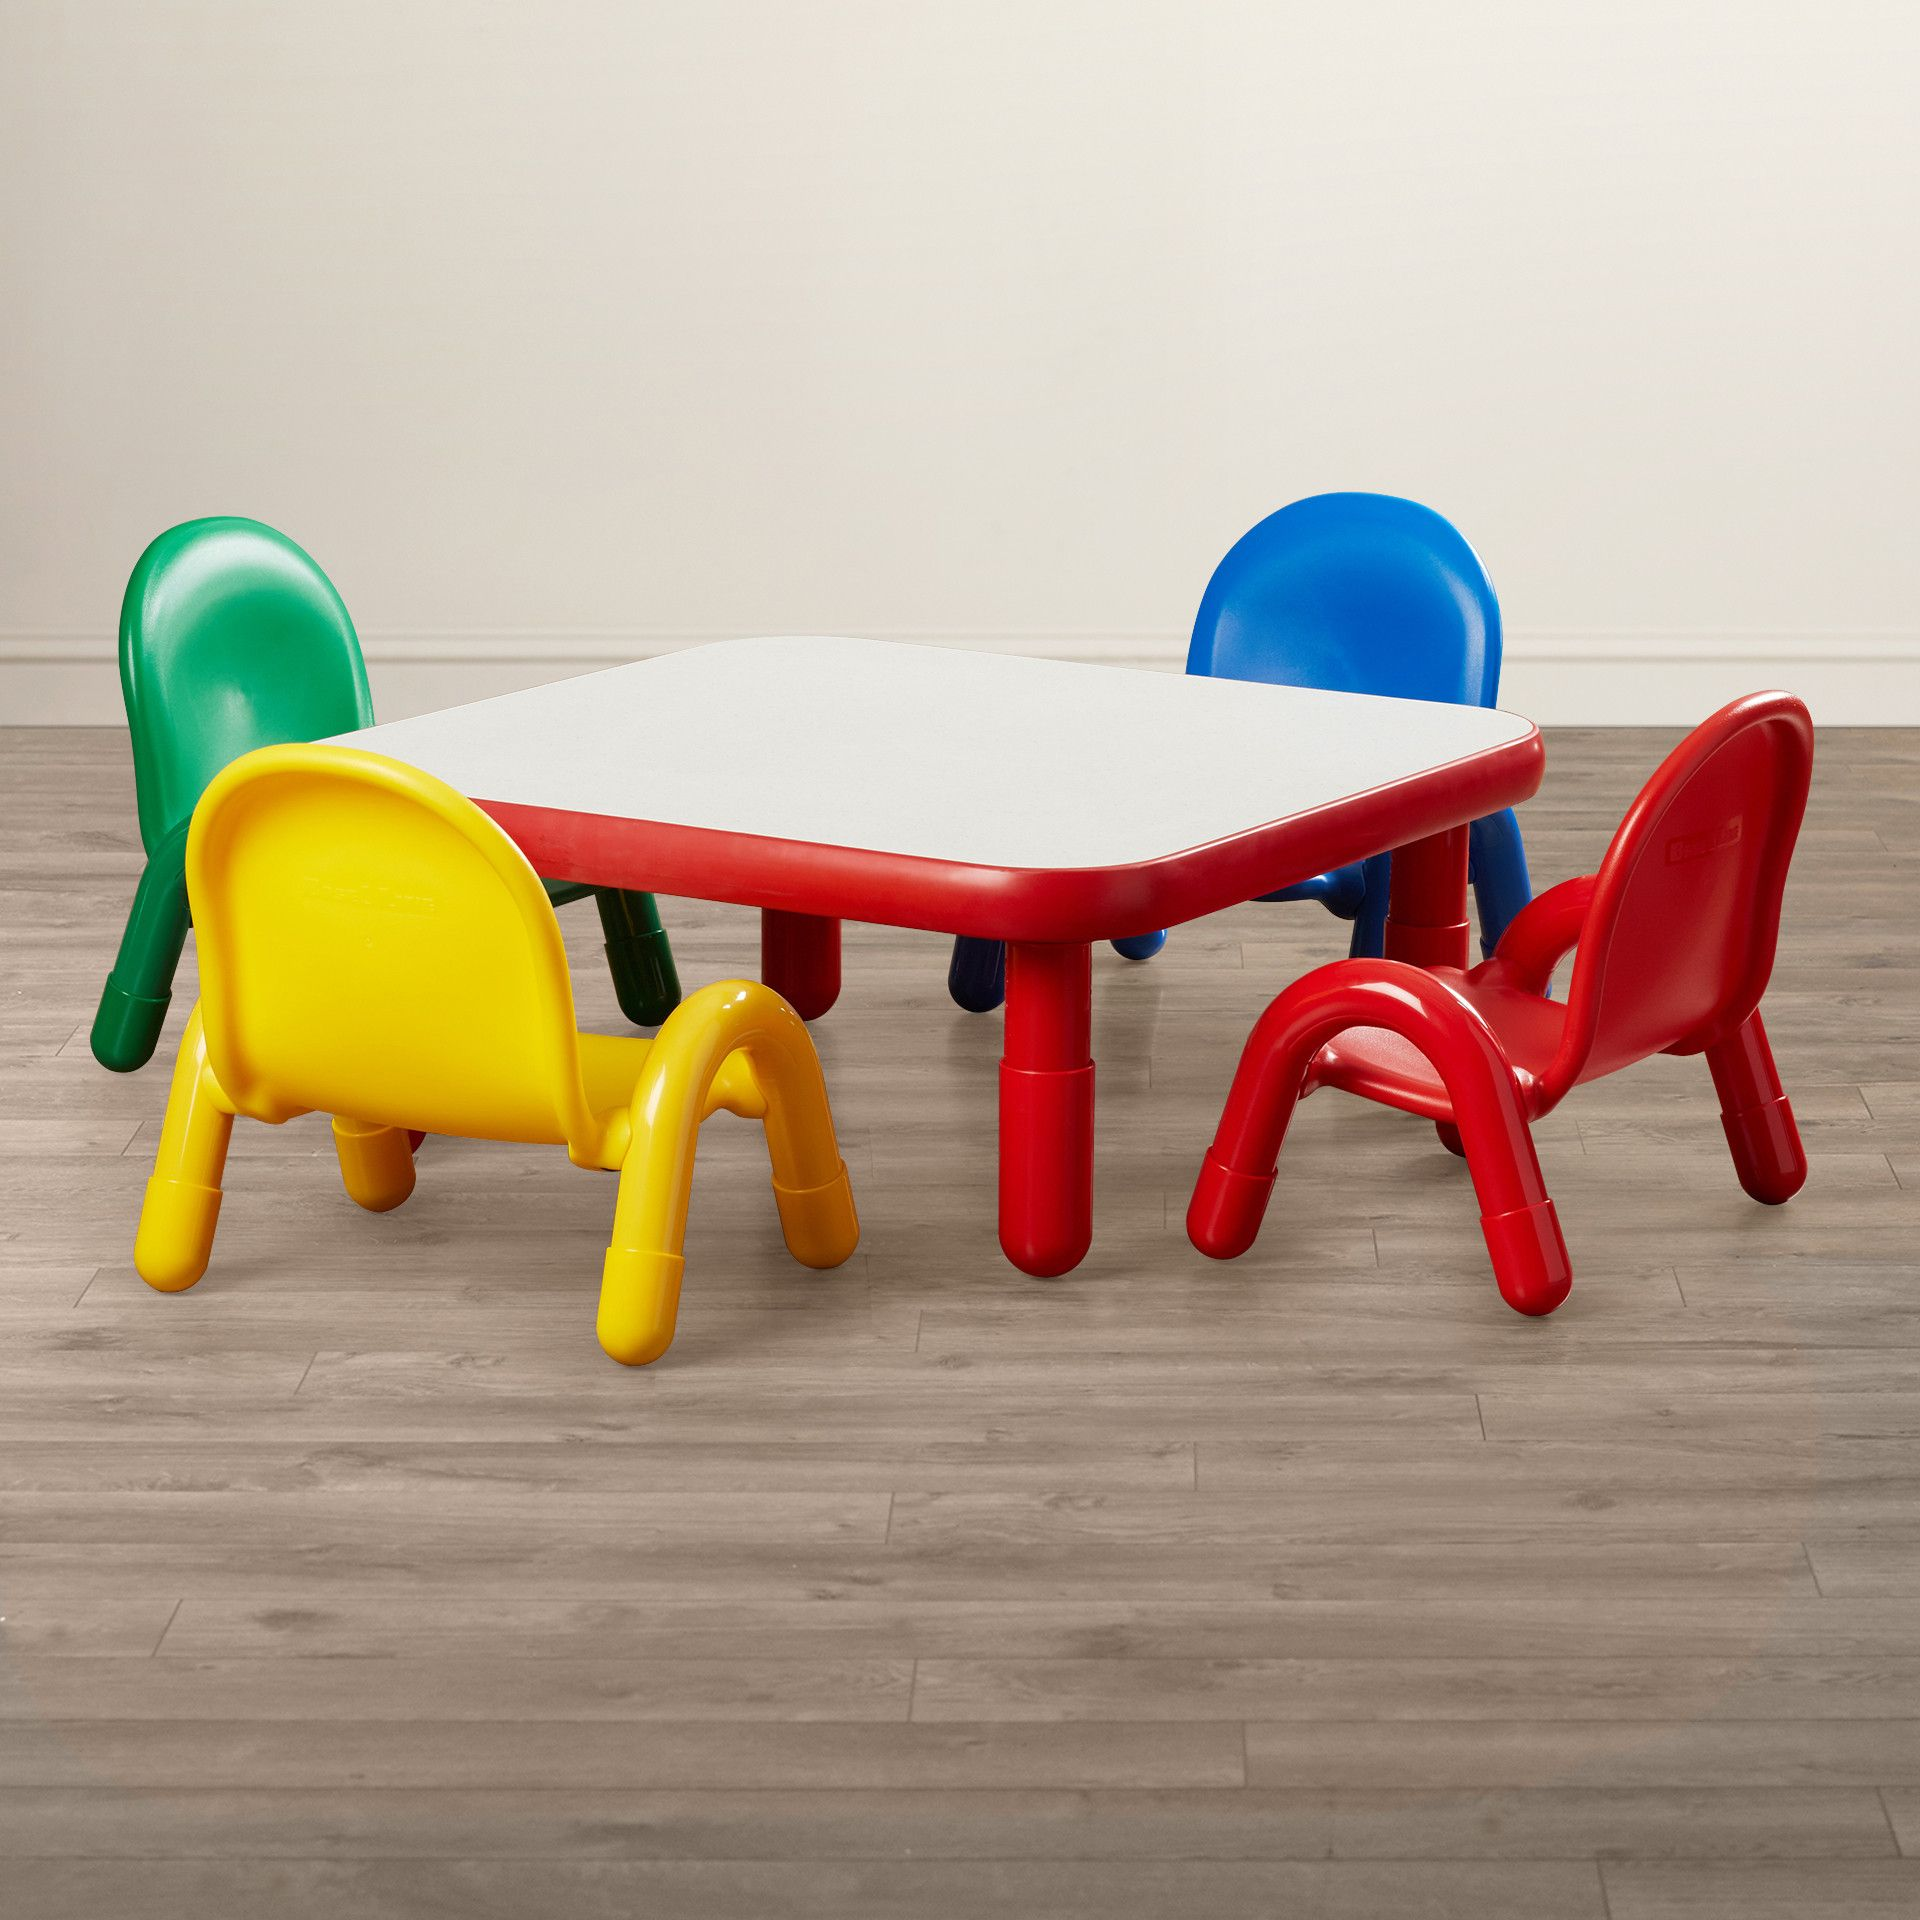 Baseline Toddler Table And Chair Set Toddler Table Kids Chairs